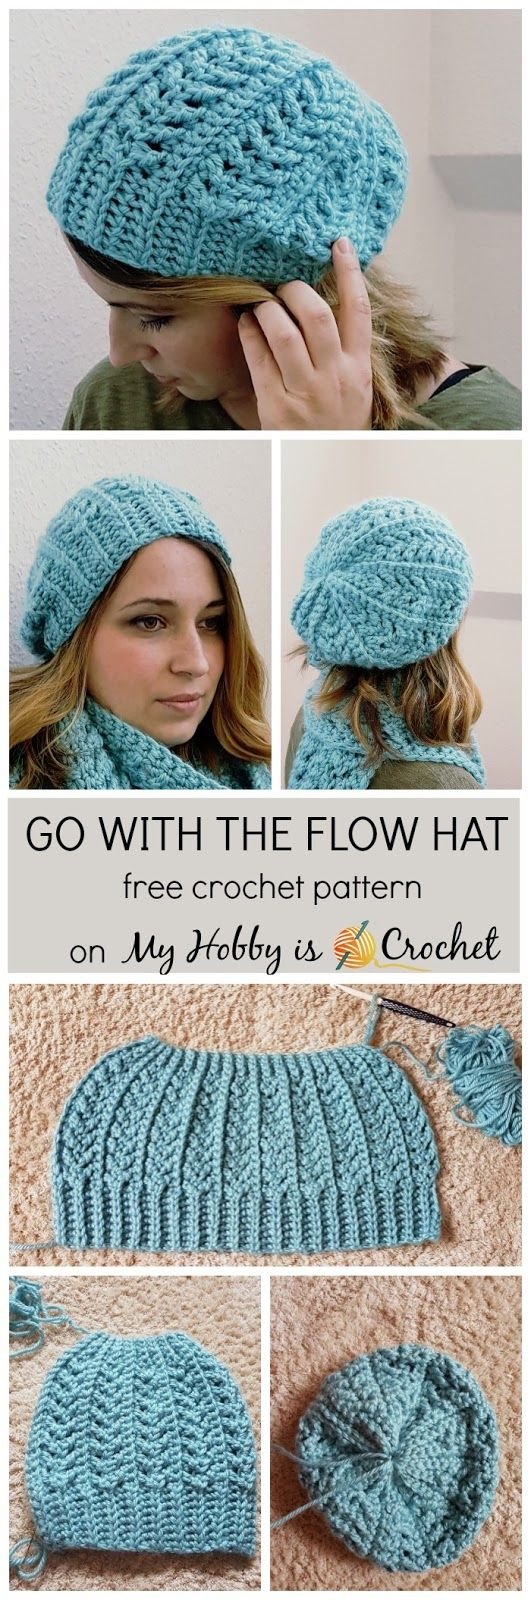 Go with the Flow Hat - Free Crochet Pattern | Patrones de crochet ...